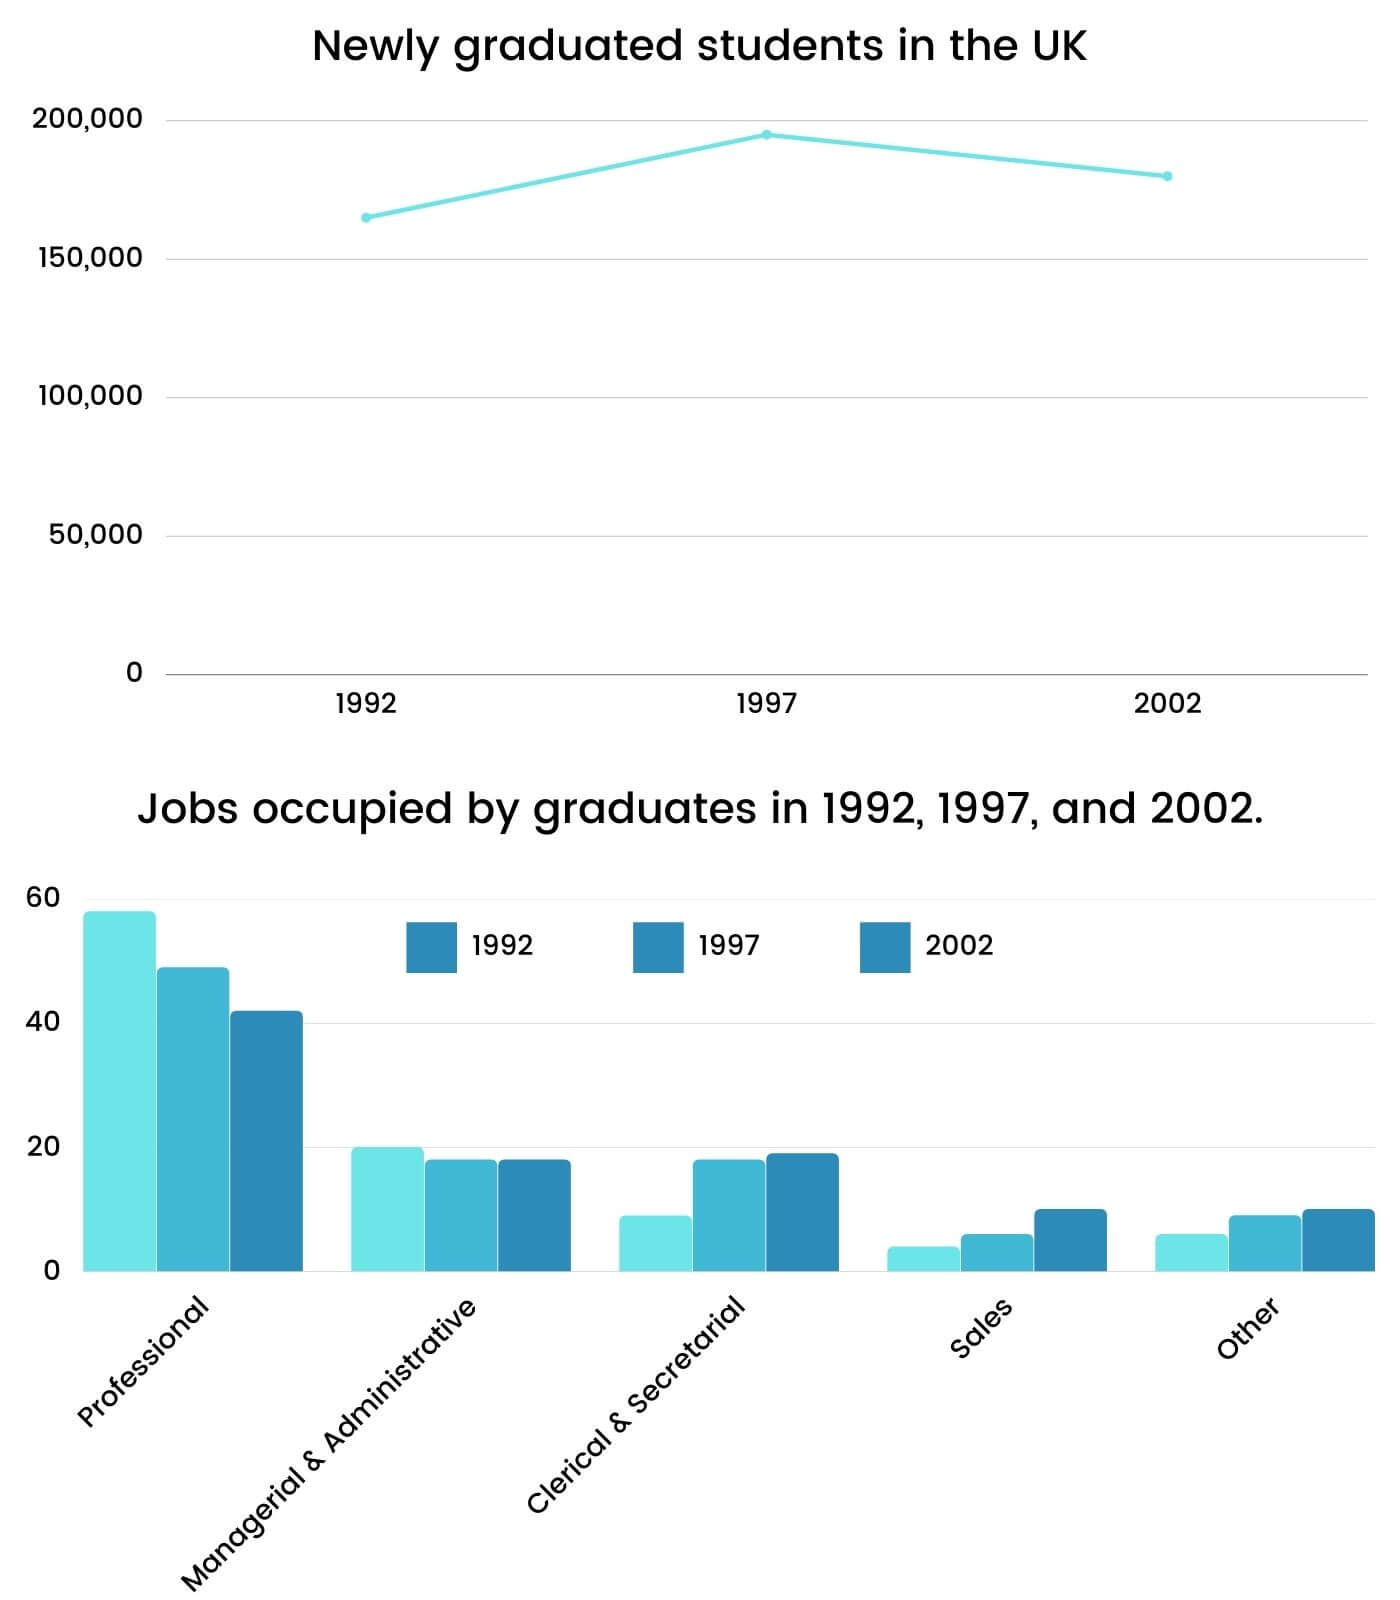 Academic Writing IELTS Task 1 Topic: Graduates in the UK and jobs occupied by them from 1992 to 2002